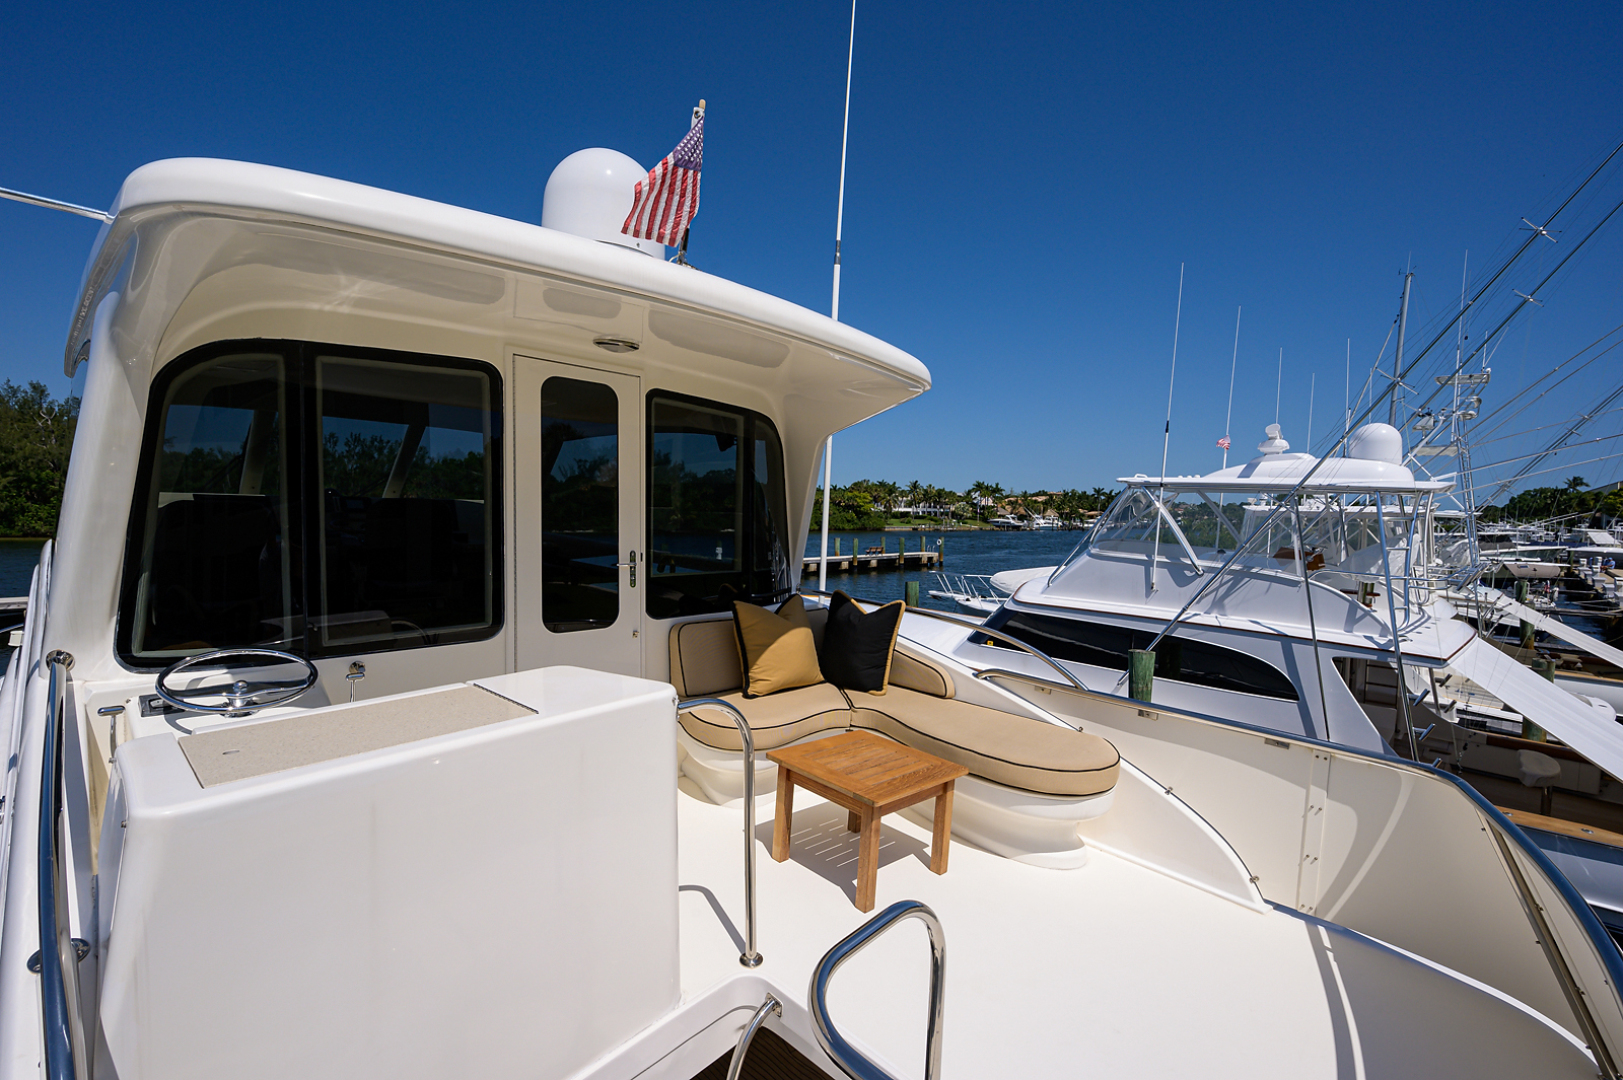 Ocean Yachts-Odyssey 2005-MISS JAN Palm Beach Gardens-Florida-United States-Enclosed Flybridge Aft Deck-1387031 | Thumbnail